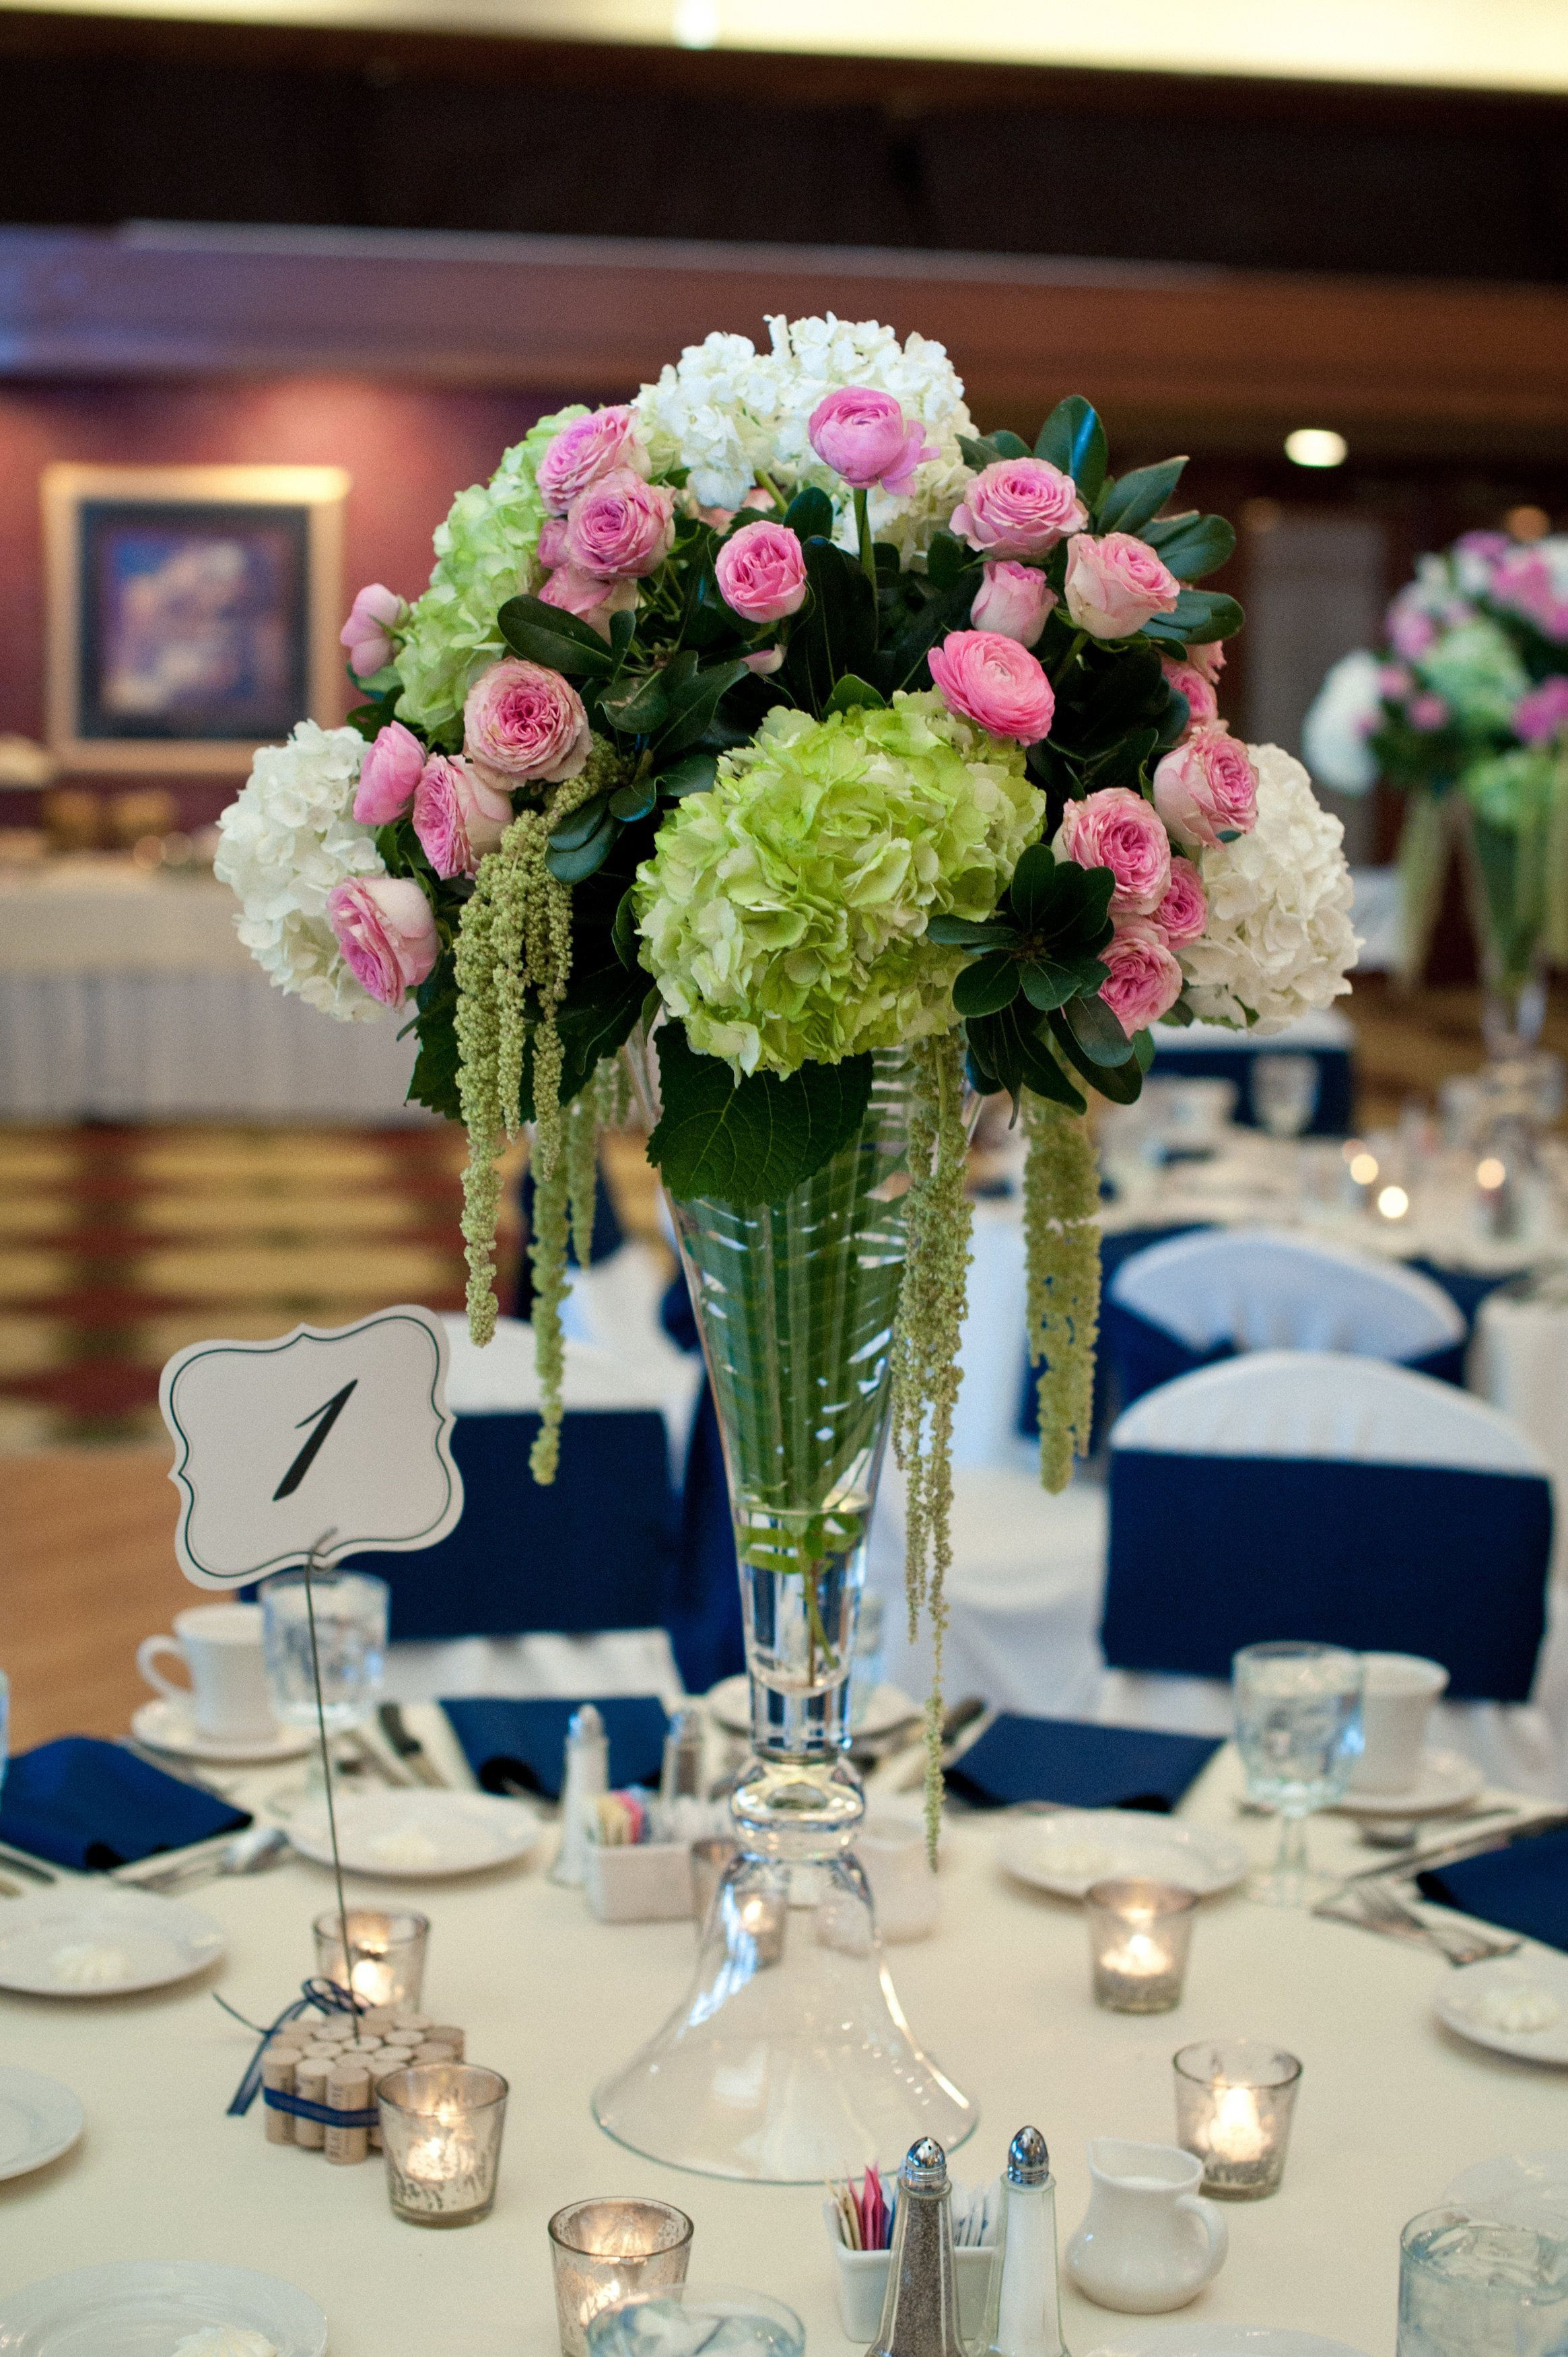 36 inch trumpet vase of 24 tall vases for sale the weekly world regarding tall wedding centerpieces green hydrangea pink garden roses white